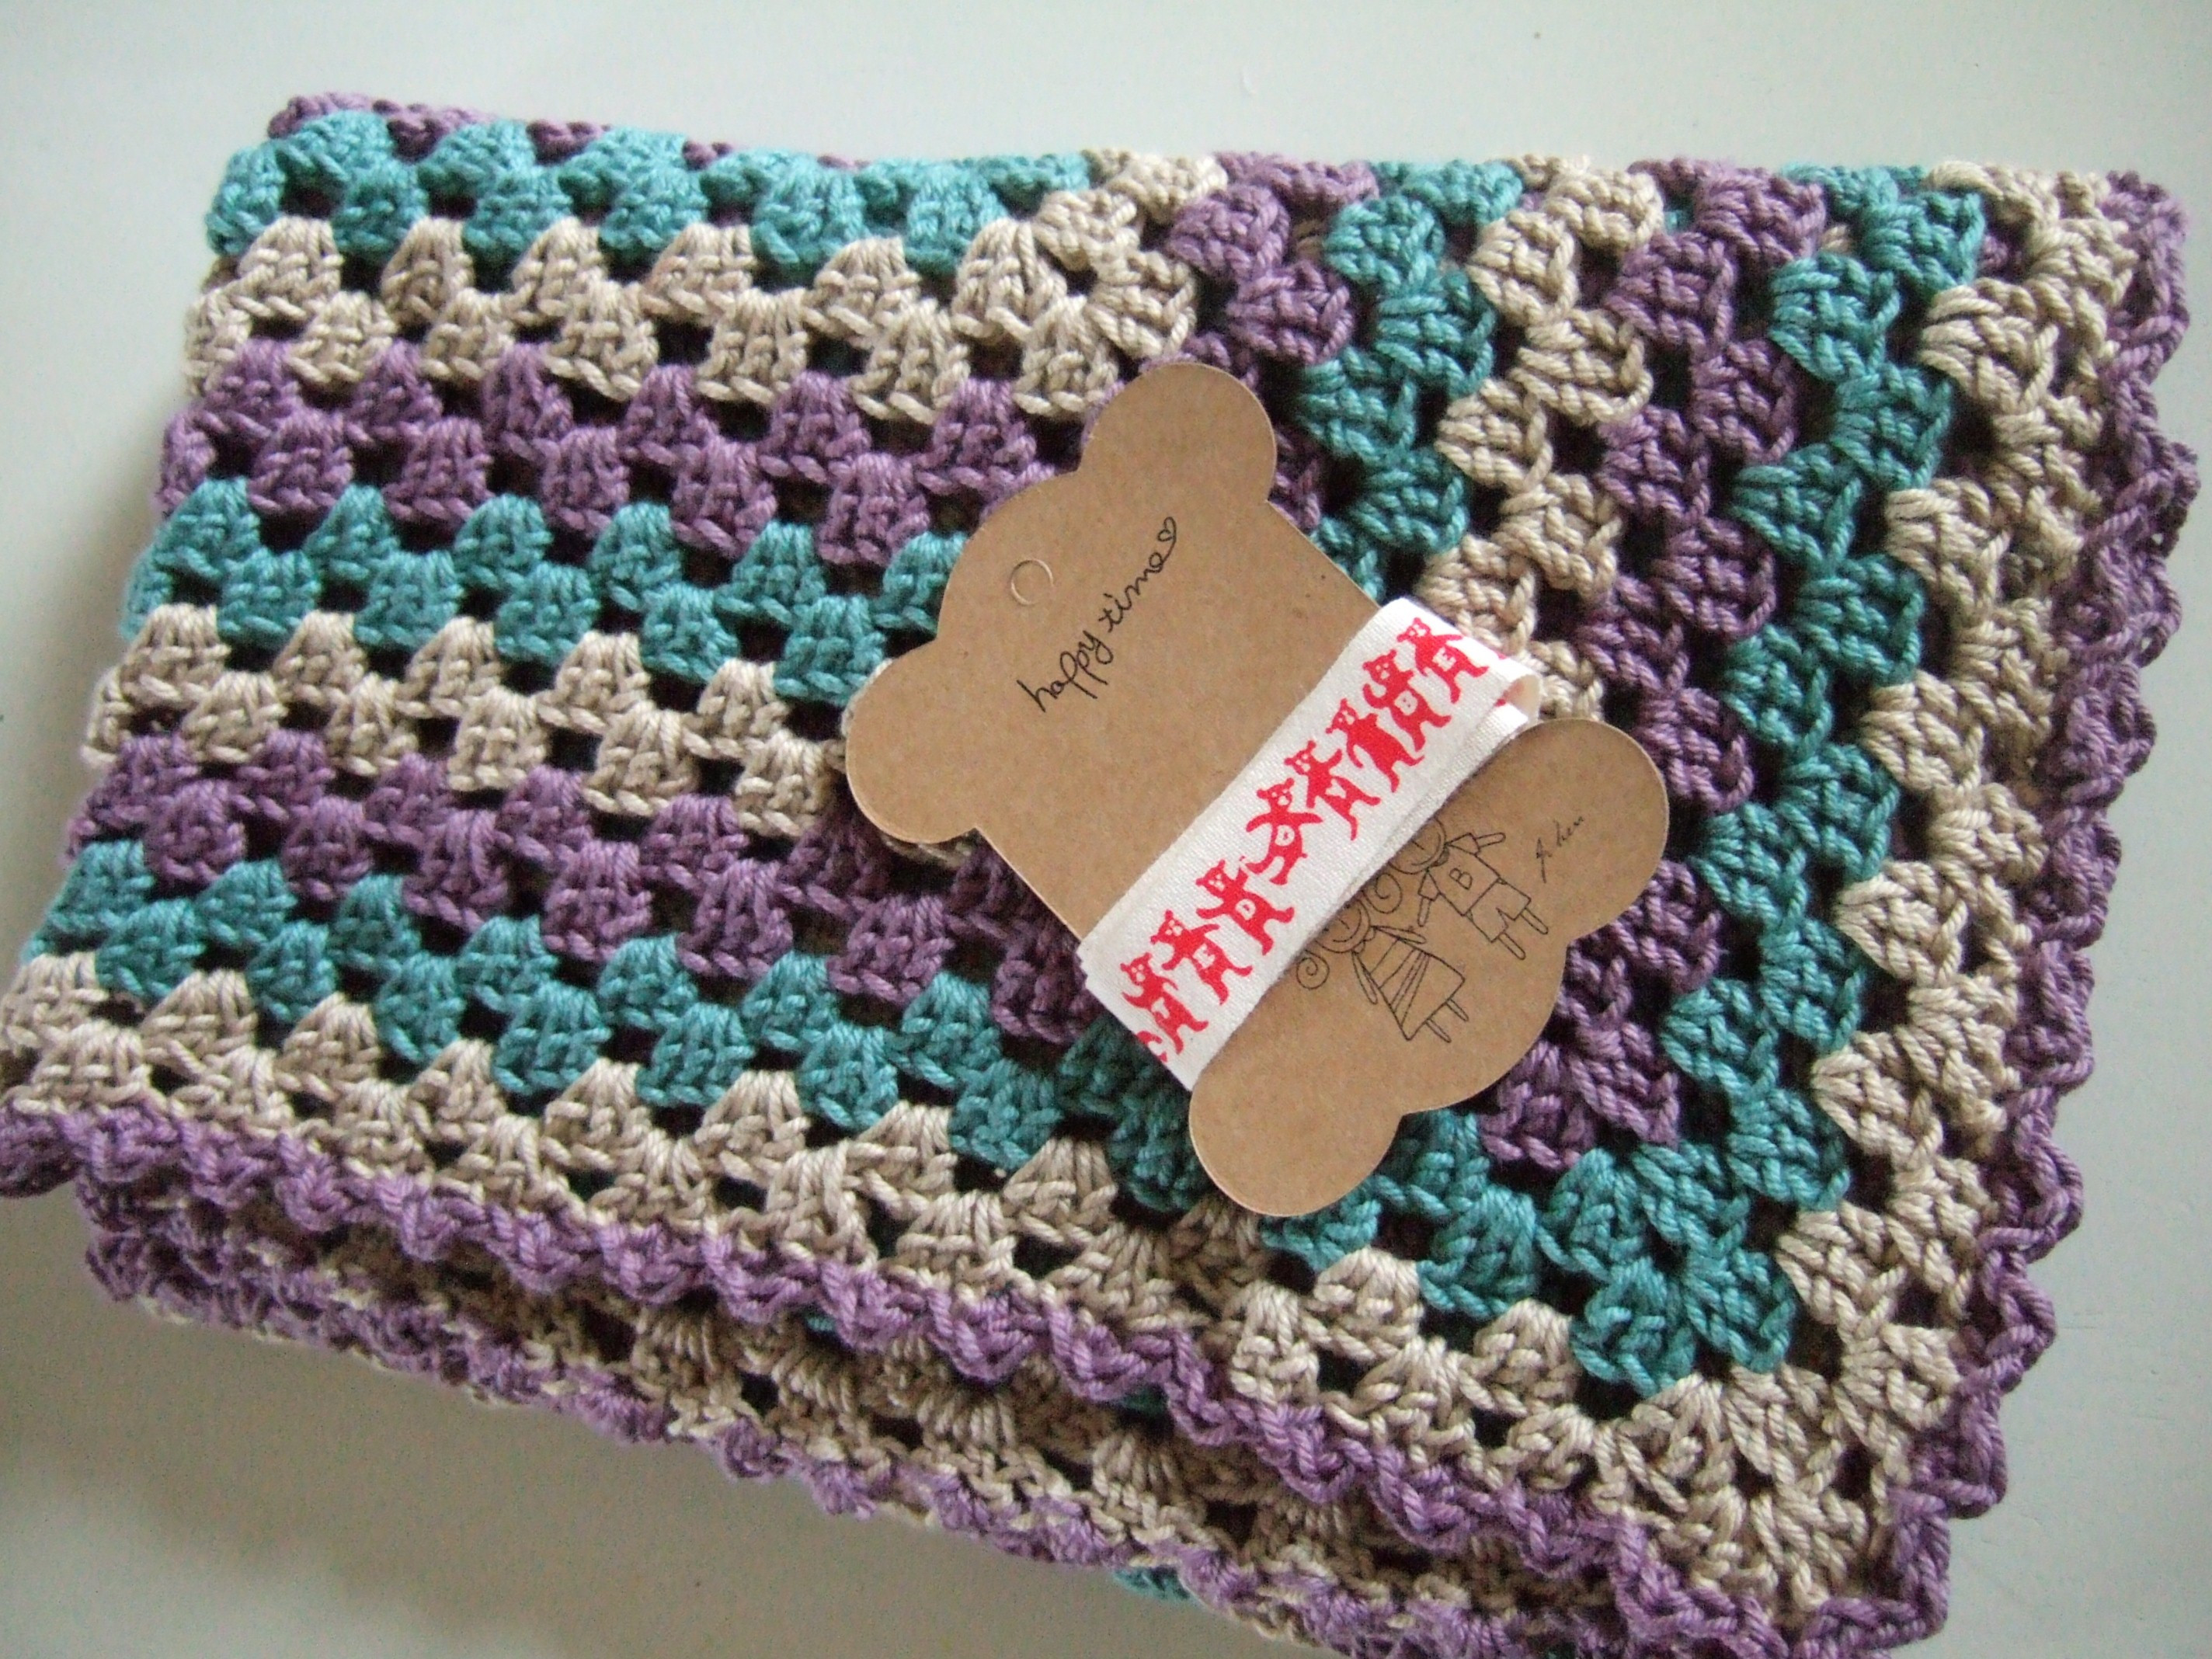 Beginner Crochet Blanket Awesome How to Crochet A Baby Blanket for Beginners Step by Step Of Marvelous 49 Images Beginner Crochet Blanket